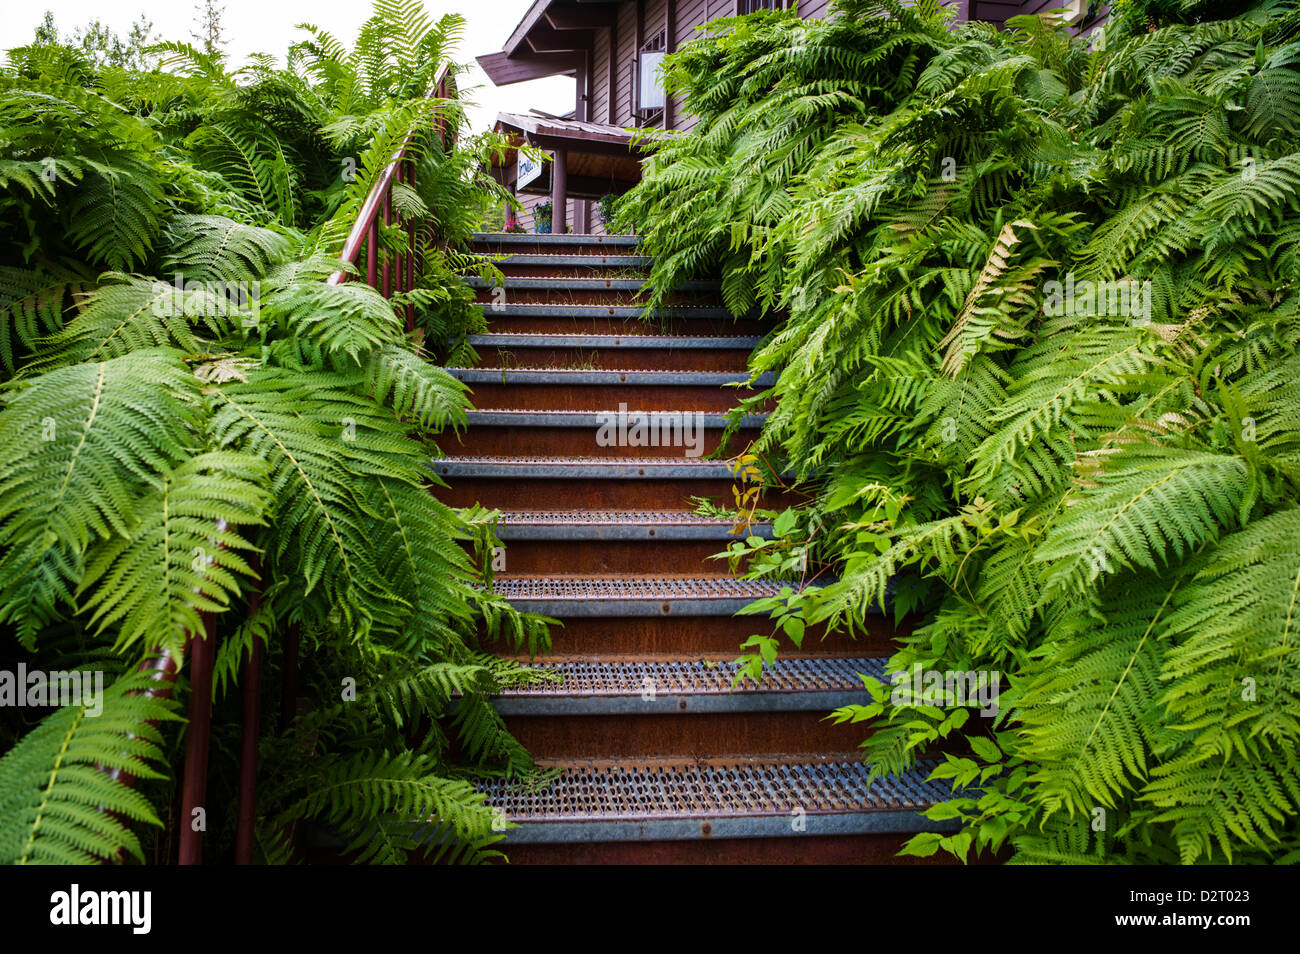 Stairs overgreen with lush green garden ferns, summer view of Aleyaska Resort & Ski Area, Aleyaska, Alaska, - Stock Image